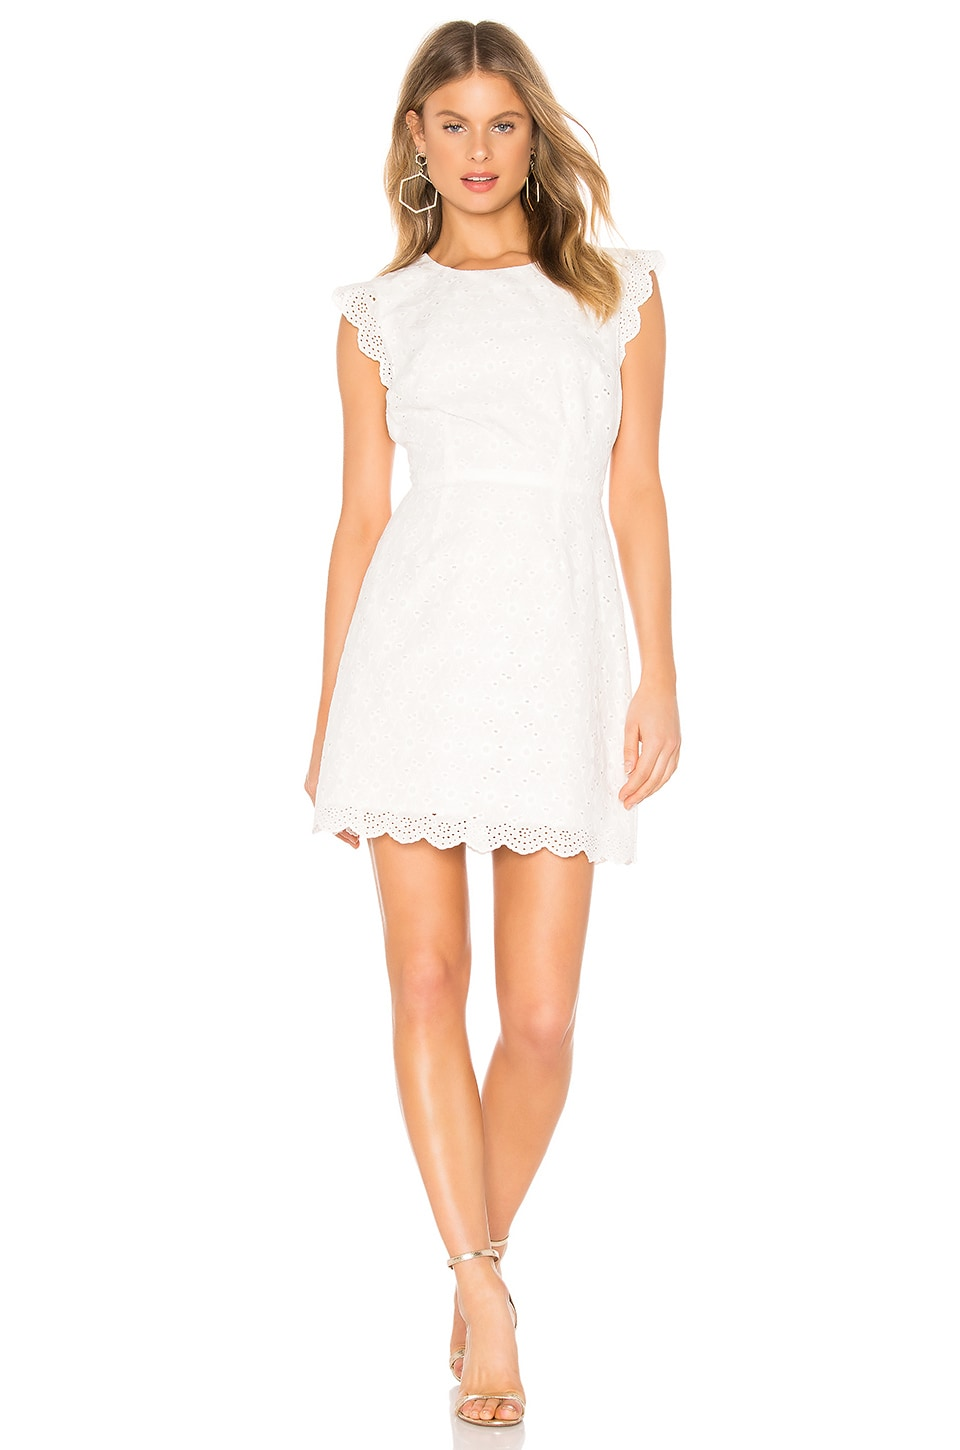 cupcakes and cashmere Keren Dress in White